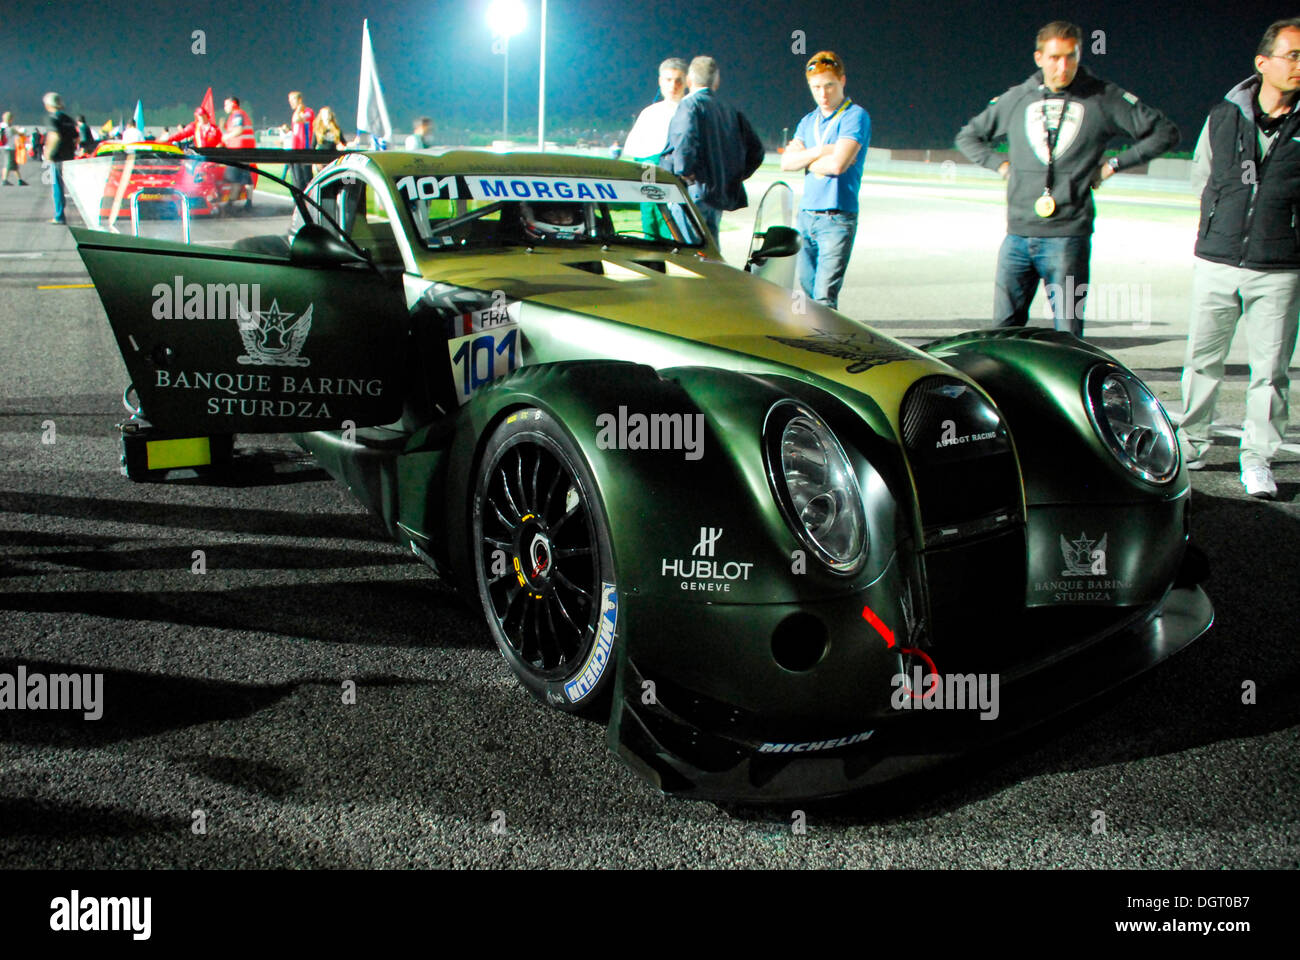 A Morgan racing car in the GT3 series on the race track in Adria, Italy, Europe Stock Photo